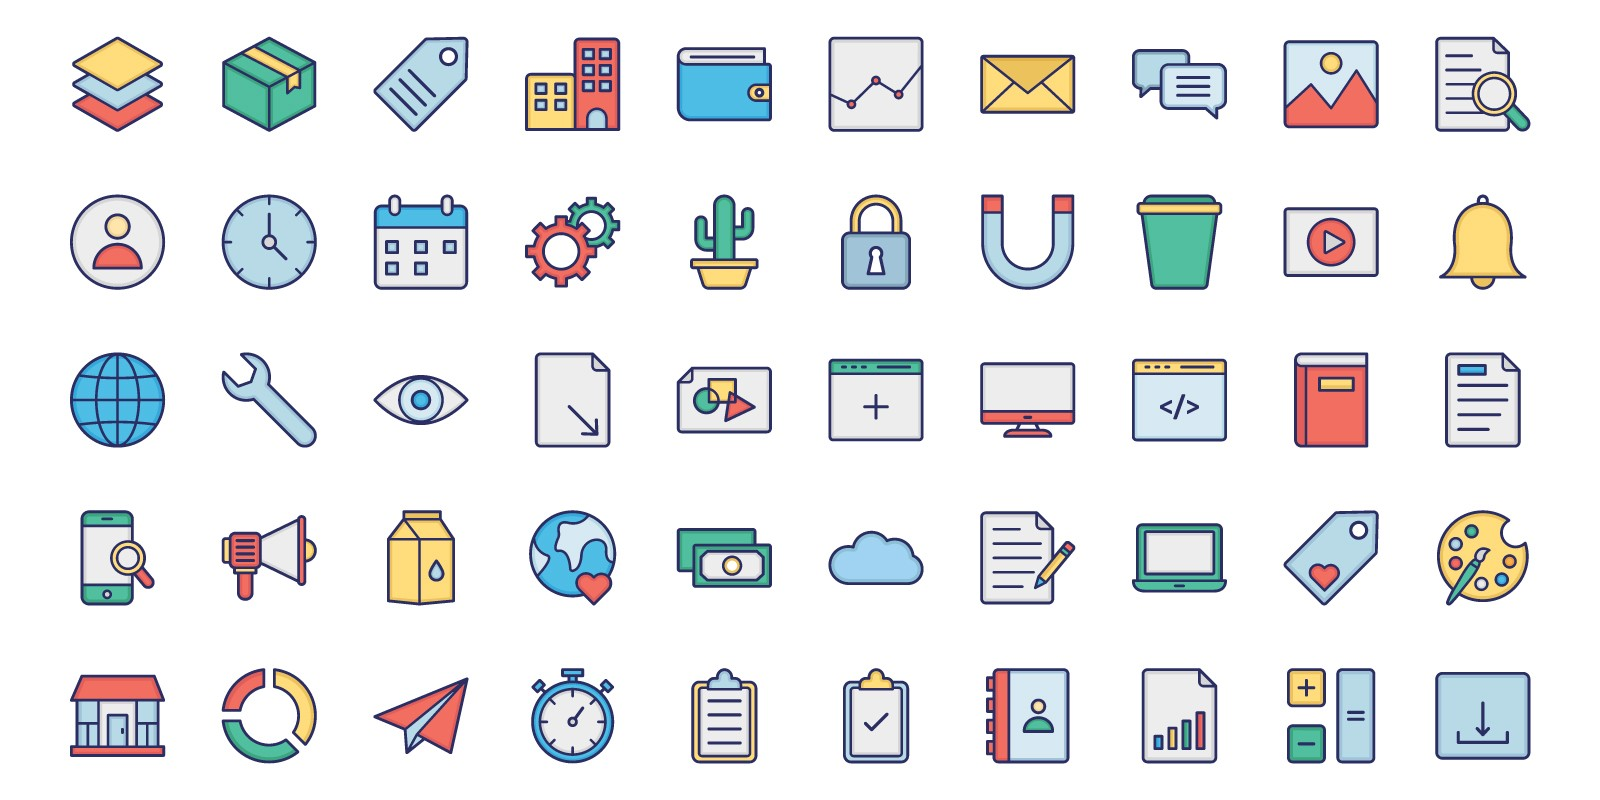 User Interface Design Vector Icons